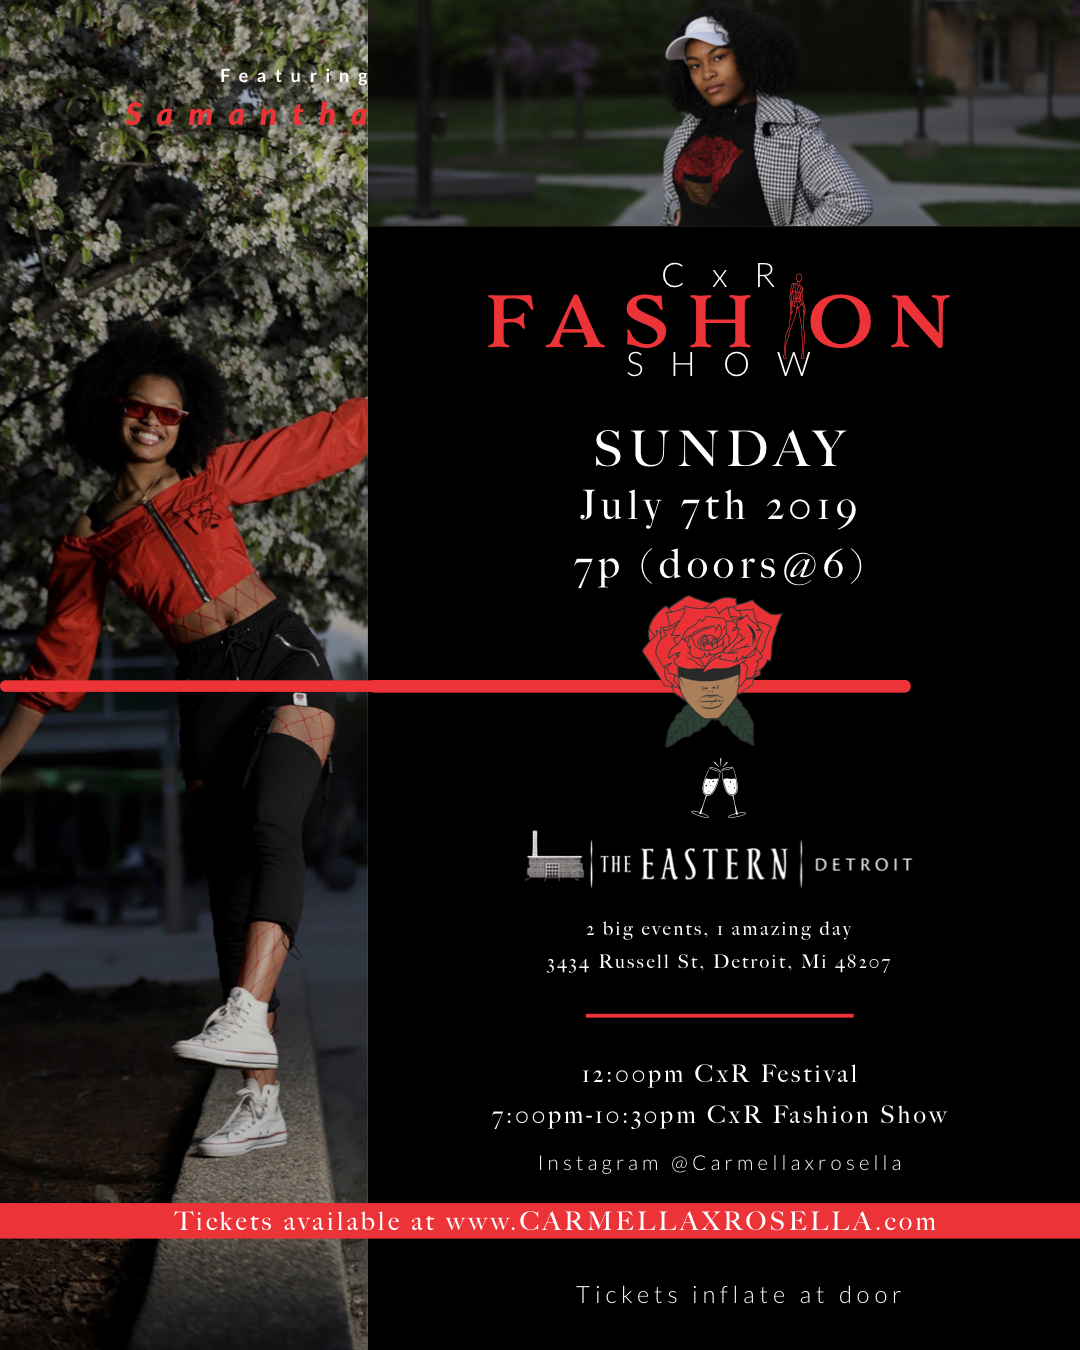 CxR Summer Fashion Show  on Jul 07, 19:00@The Eastern - Pick a seat, Buy tickets and Get information on Carmellaxrosella.com cxr